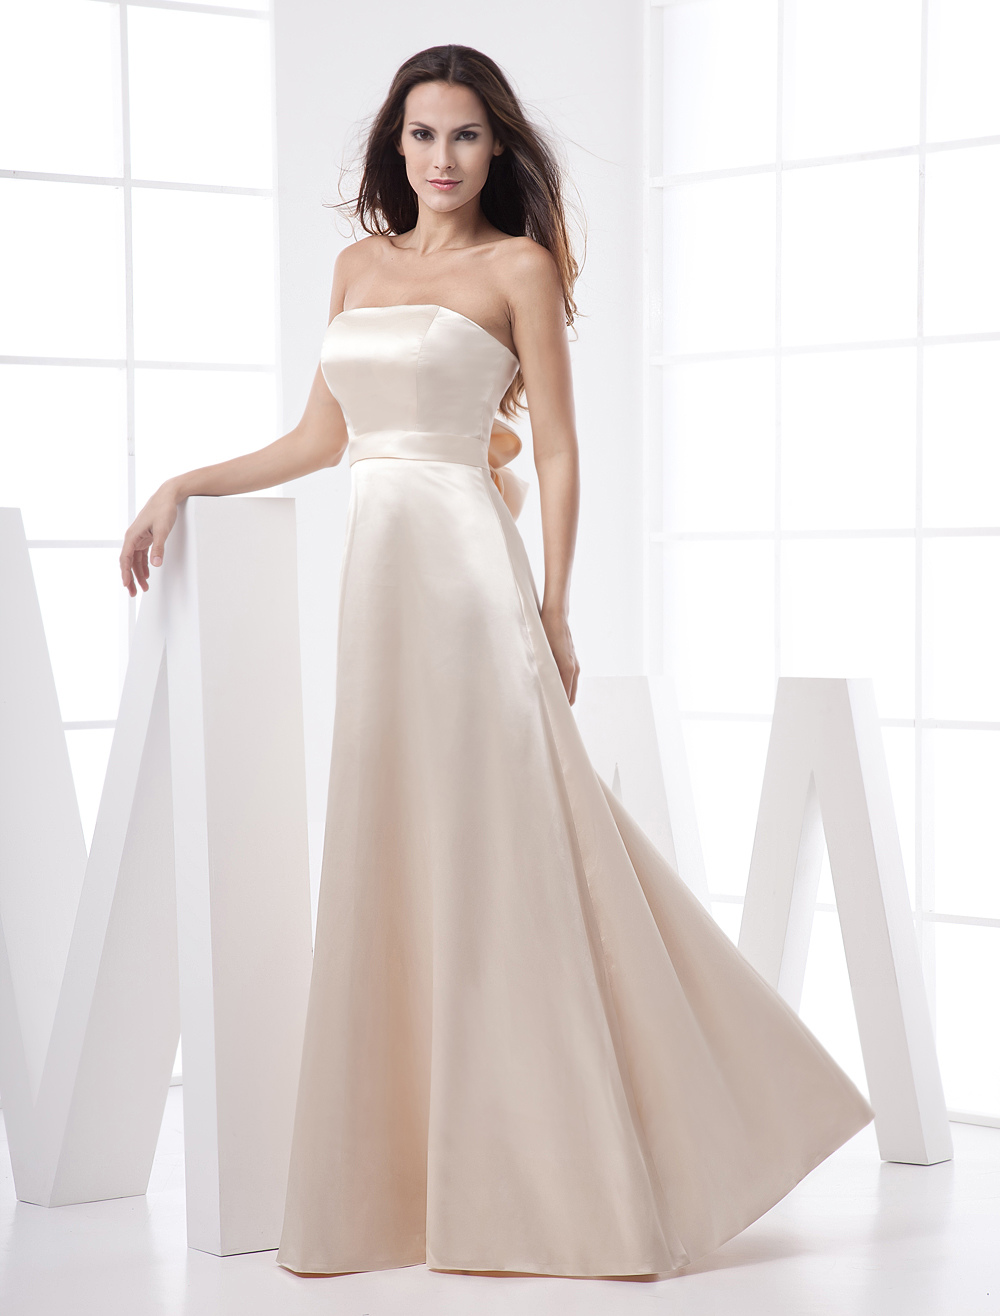 Classic Strapless Champagne Floor-Length A-line Evening Dress with Unique Bow at the Back